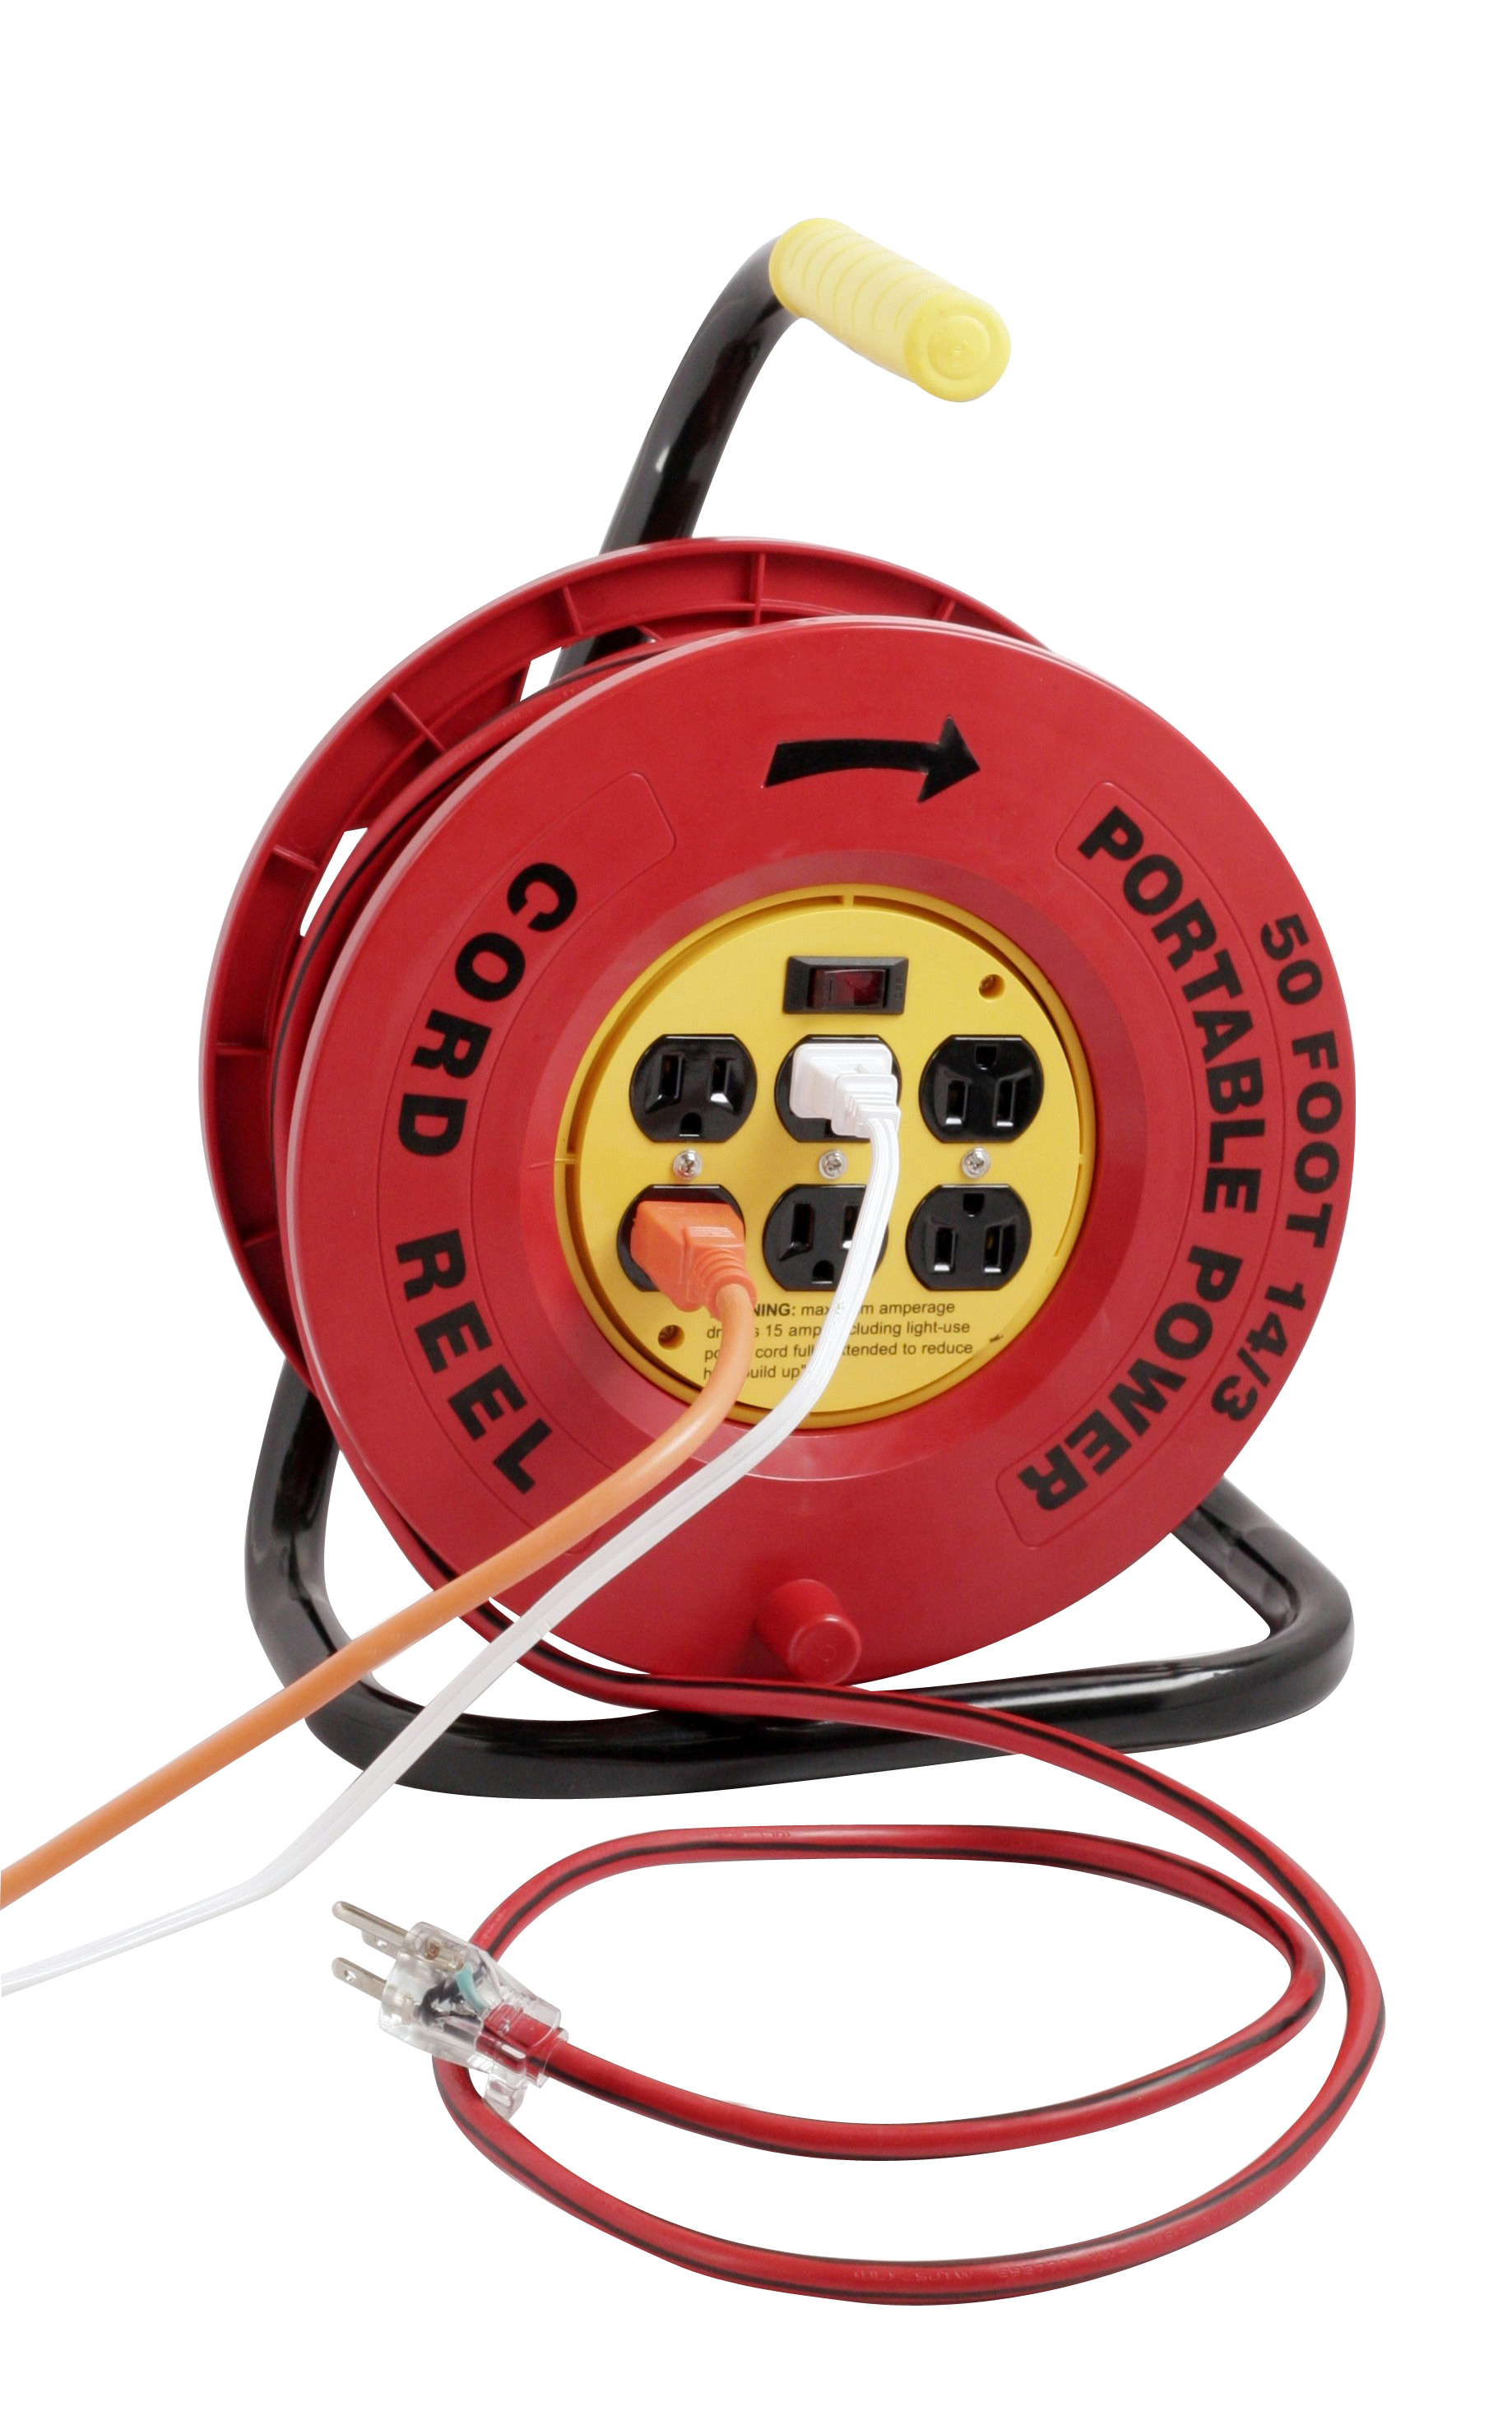 RED CORD REEL WITH 6 OUTLETS & 50' CORD